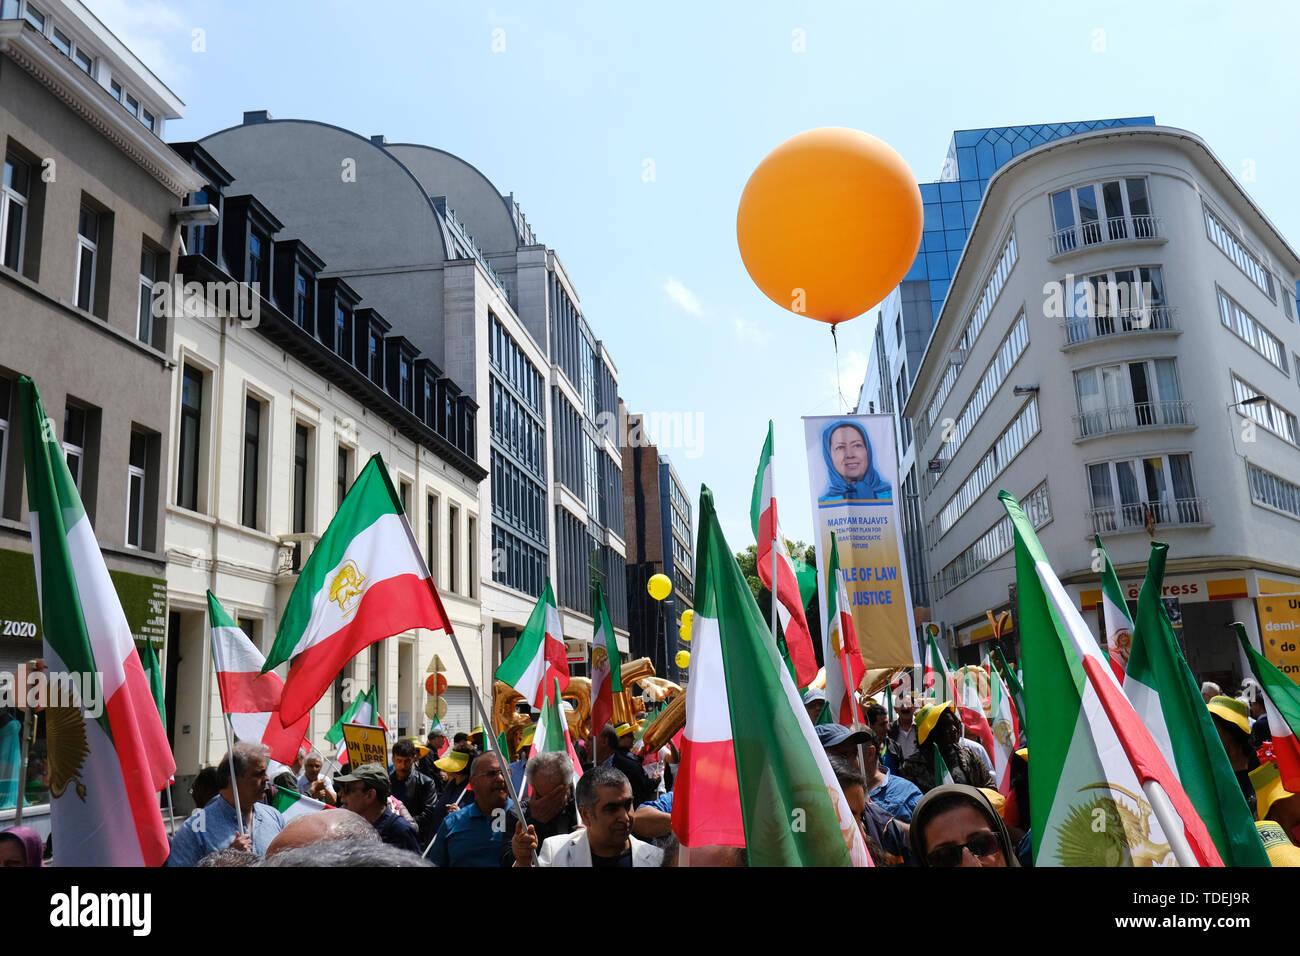 Brussels, Belgium. 15th June, 2019. Protesters hold Iranian flags as they attend a demonstration against the Iranian government and system. The demonstration organized by the National Council of Resistance of Iran (NCRI) is held to support Iranians in their fight for freedom and democracy in Iran. Credit: ALEXANDROS MICHAILIDIS/Alamy Live News - Stock Image